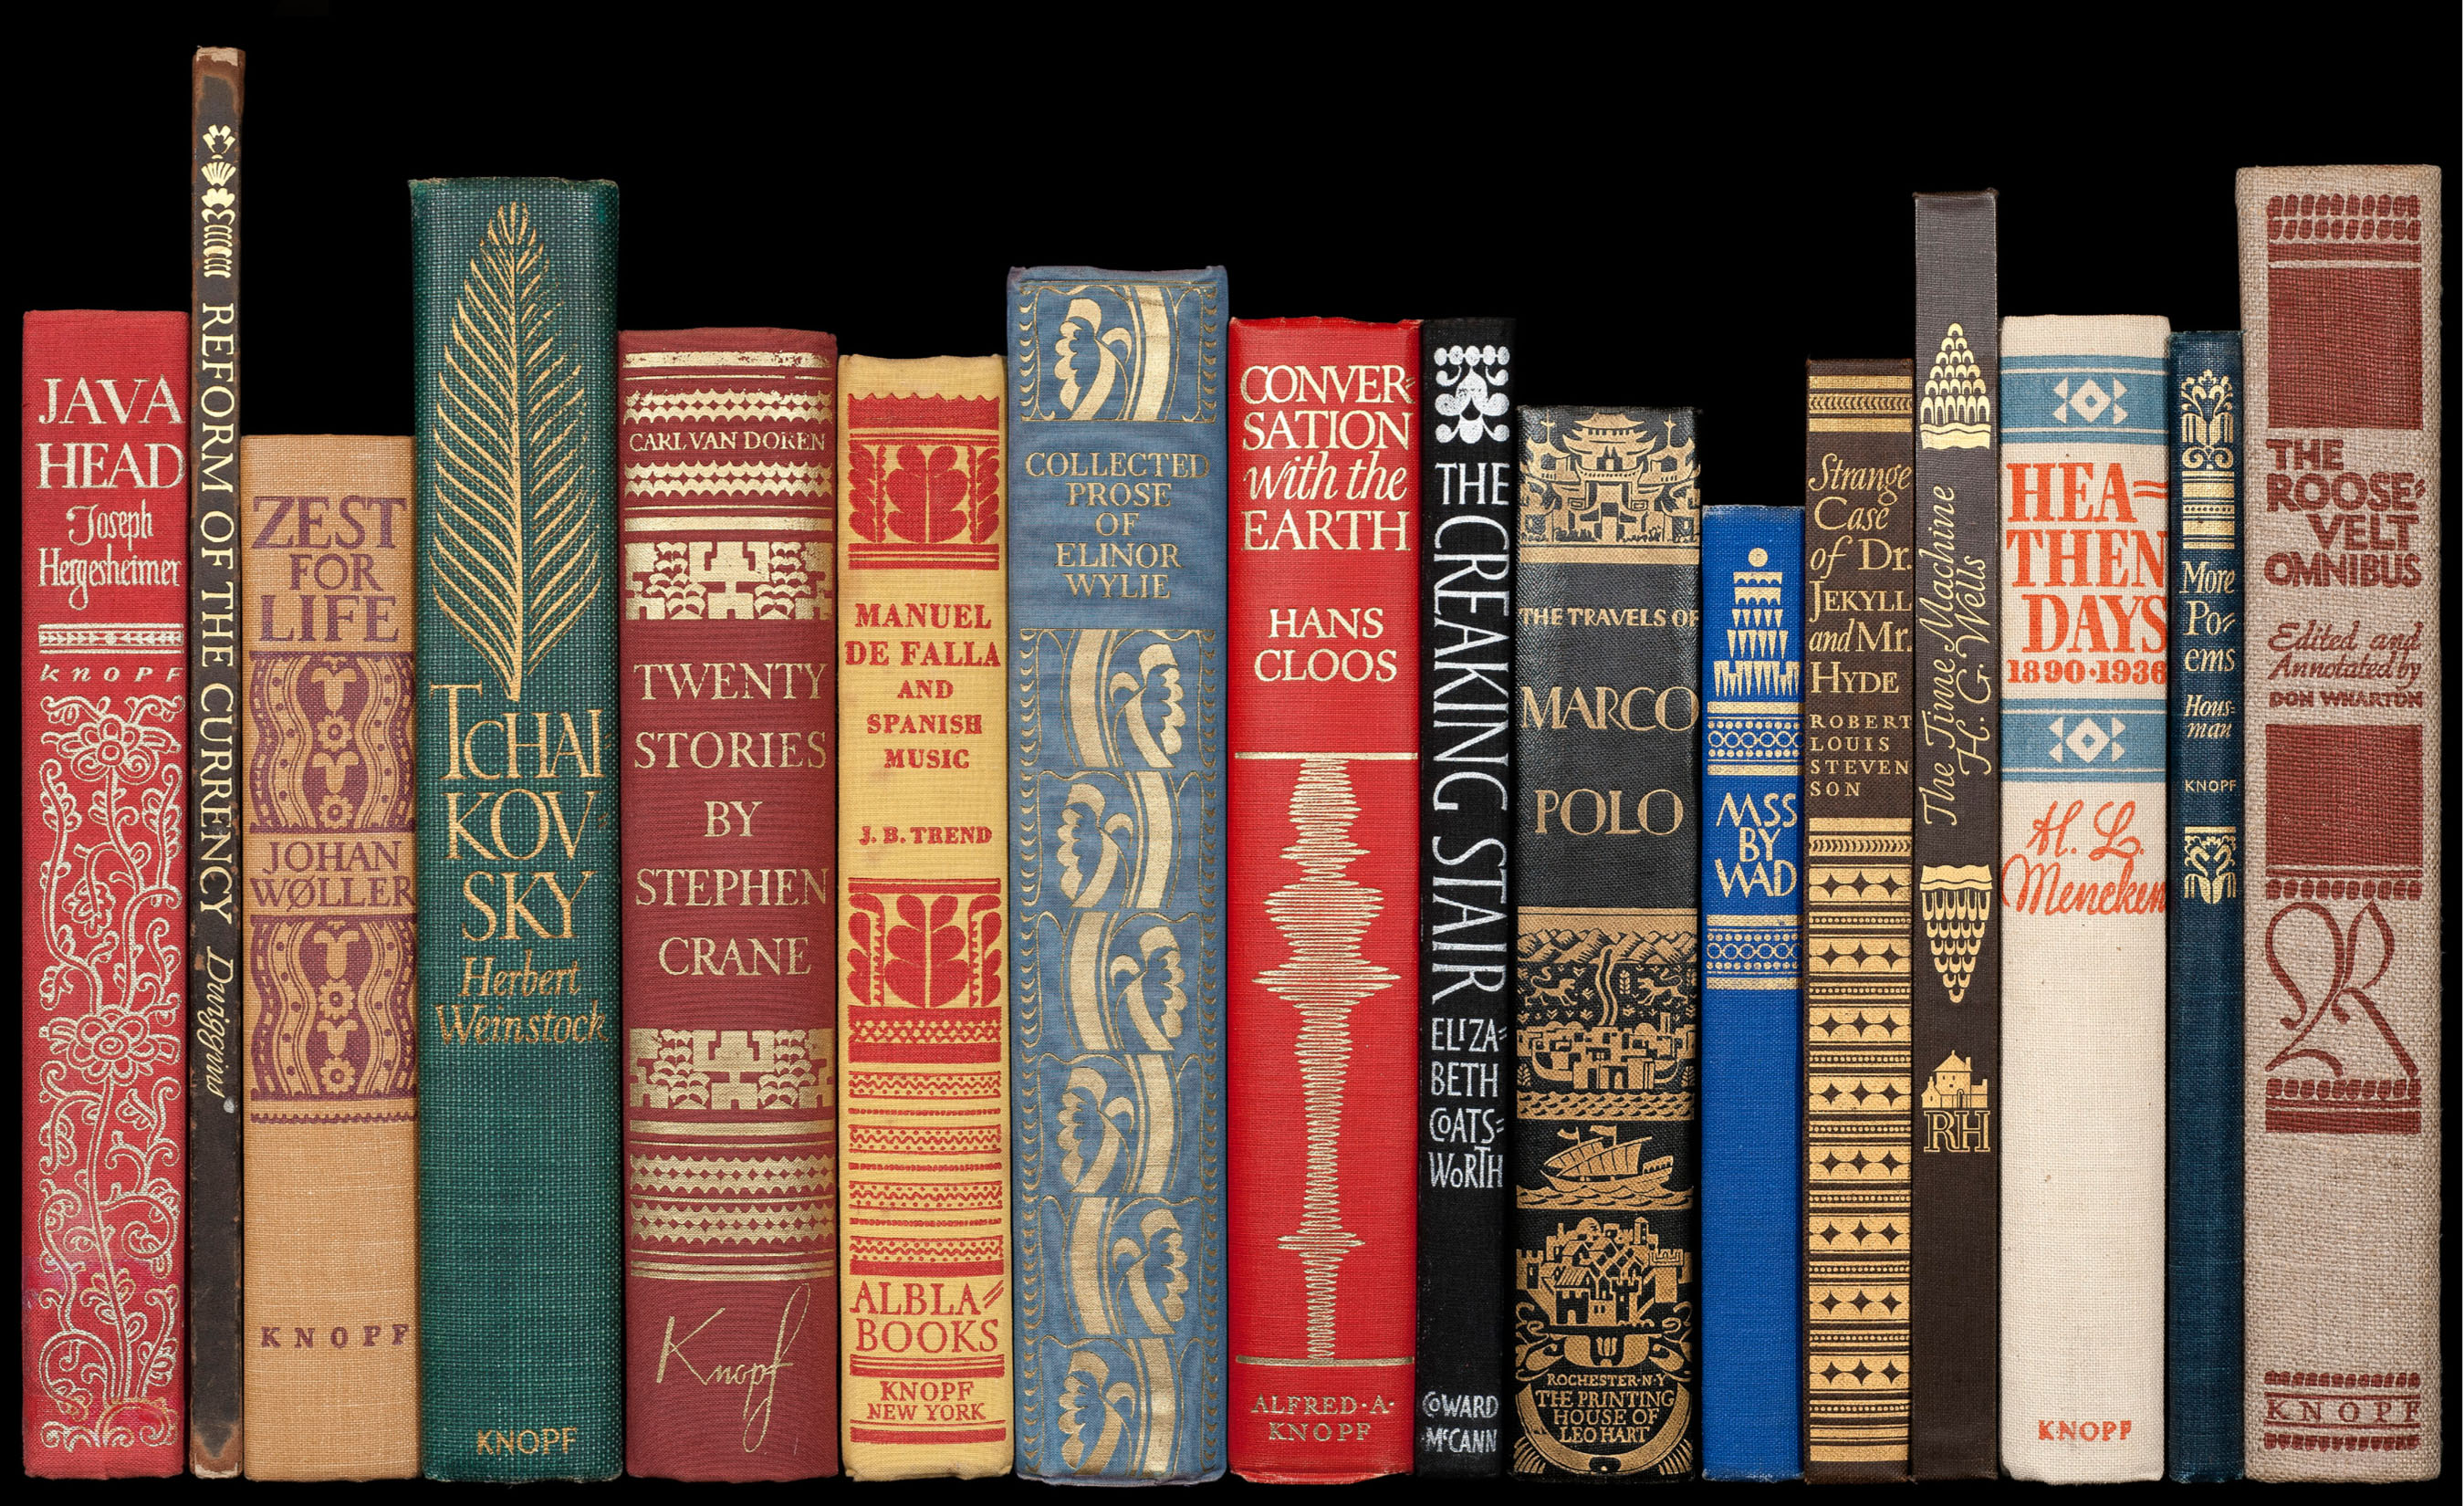 Book spines by W. A. Dwiggins